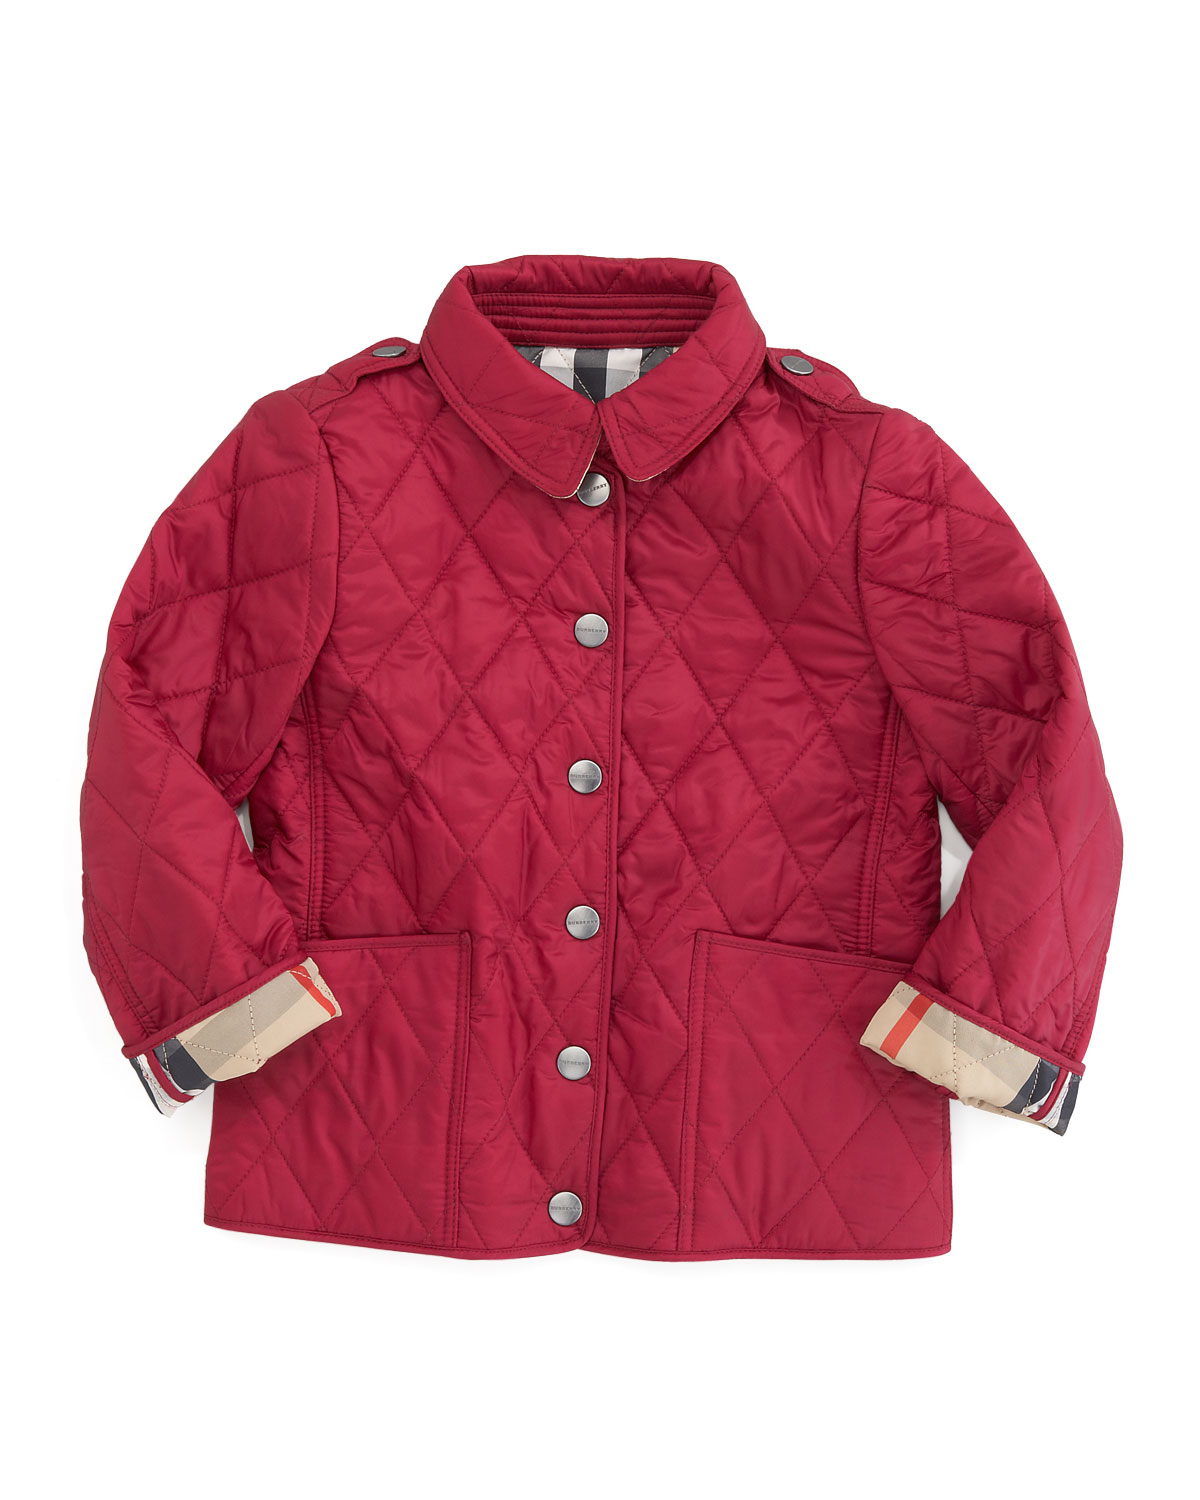 Burberry Mini-Pirmont Diamond Quilted Jacket, Fritillary Pink ... : burberry pirmont quilted jacket - Adamdwight.com